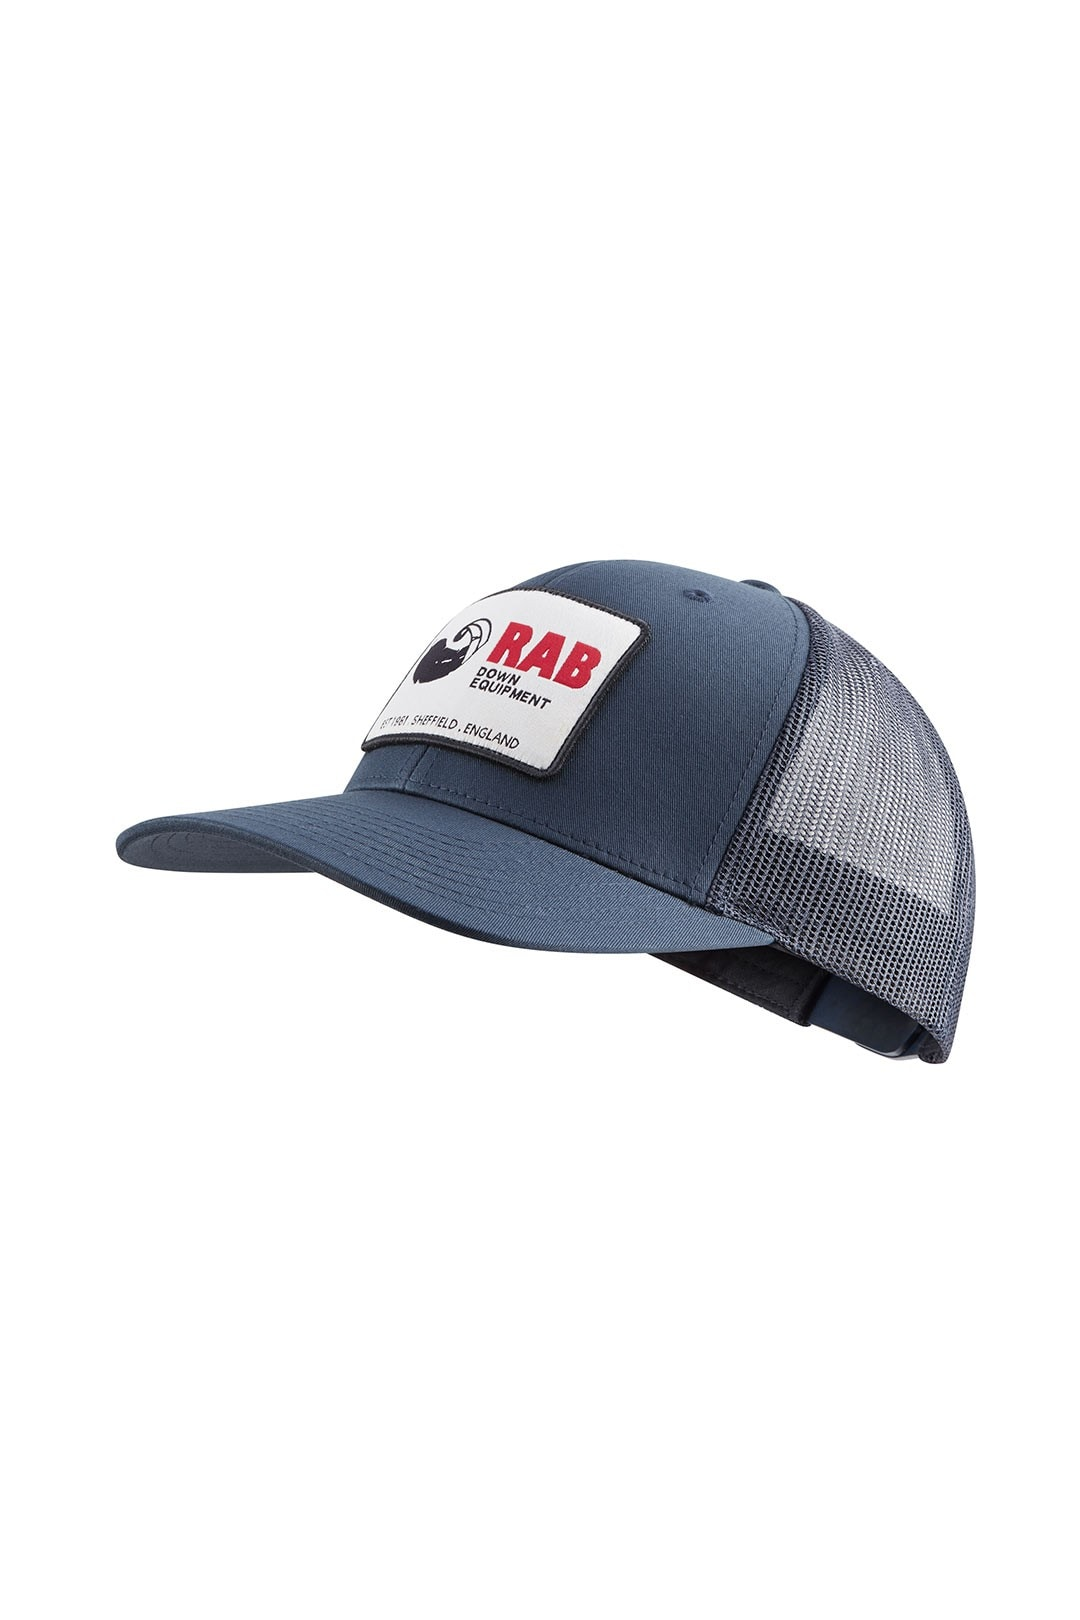 RAB Freight  Cap, One Size